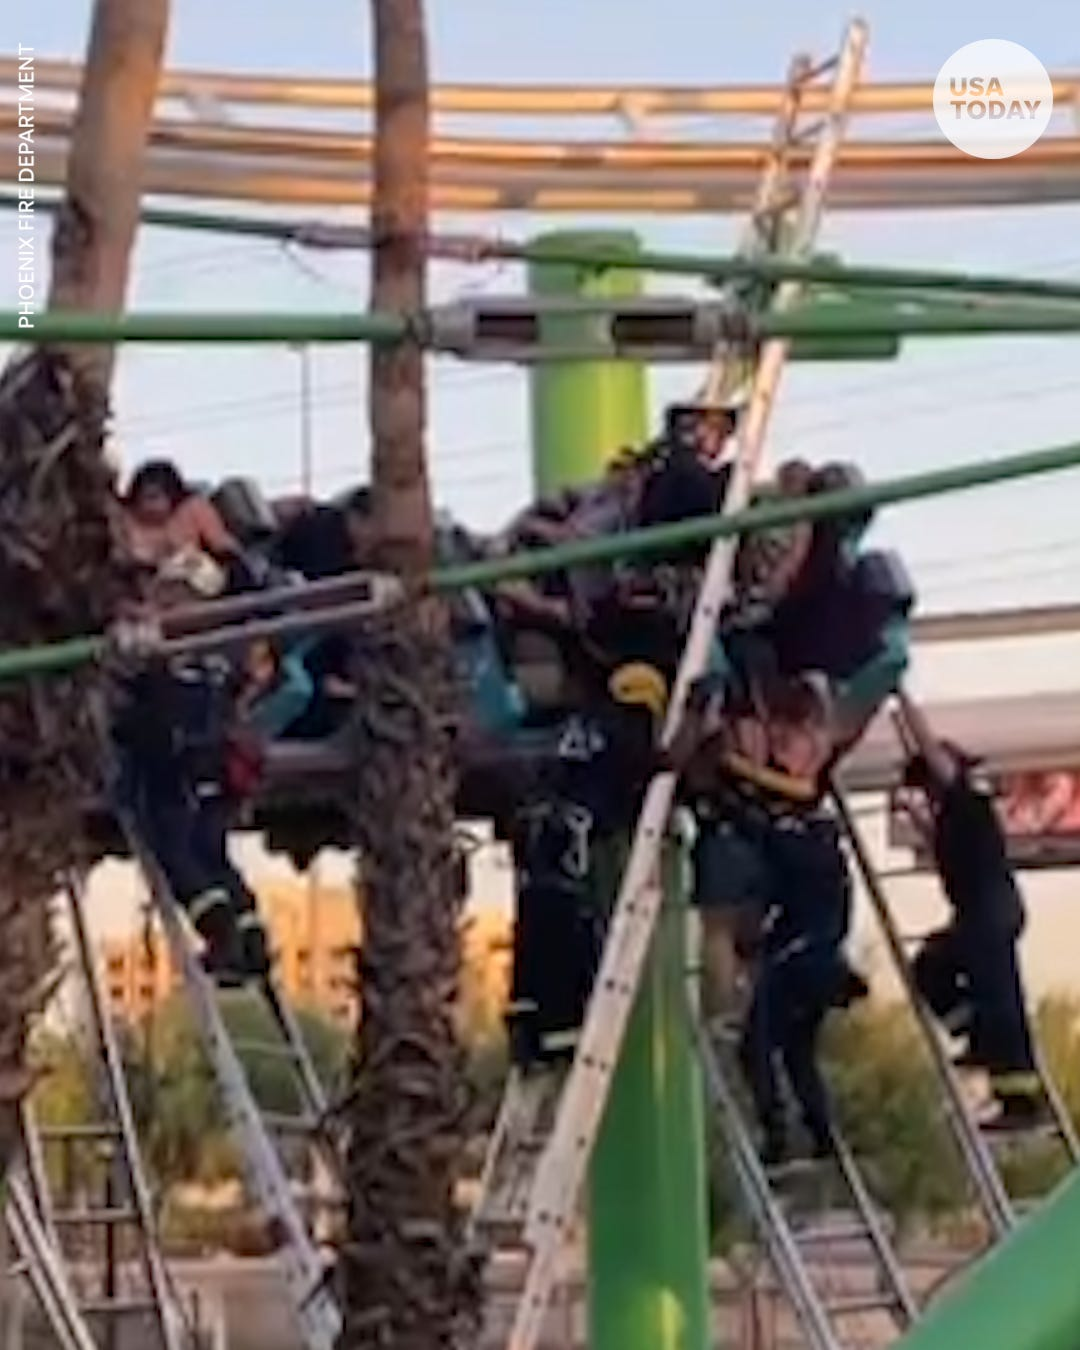 22 people rescued after roller coaster in Arizona gets stuck